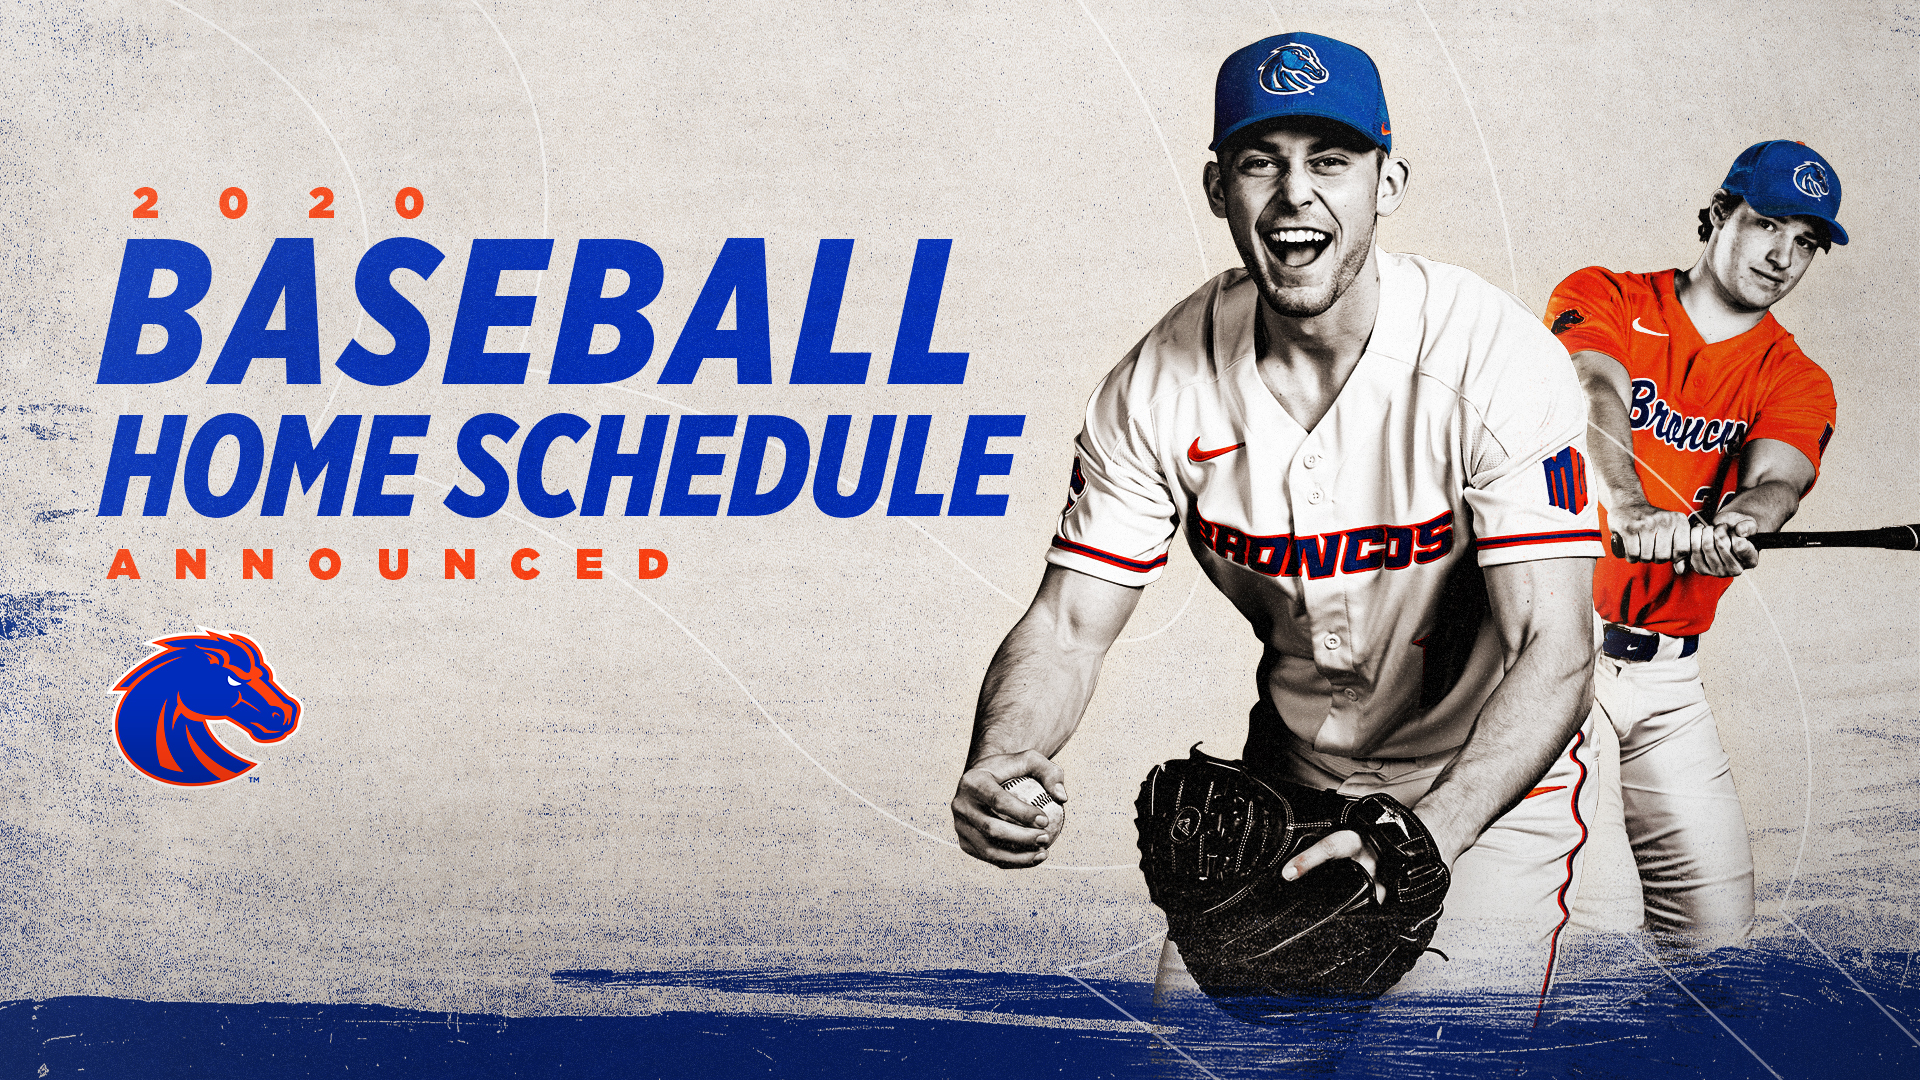 Boise State Baseball Announces 2020 Home Schedule And Season Ticket Information Boise State University Athletics